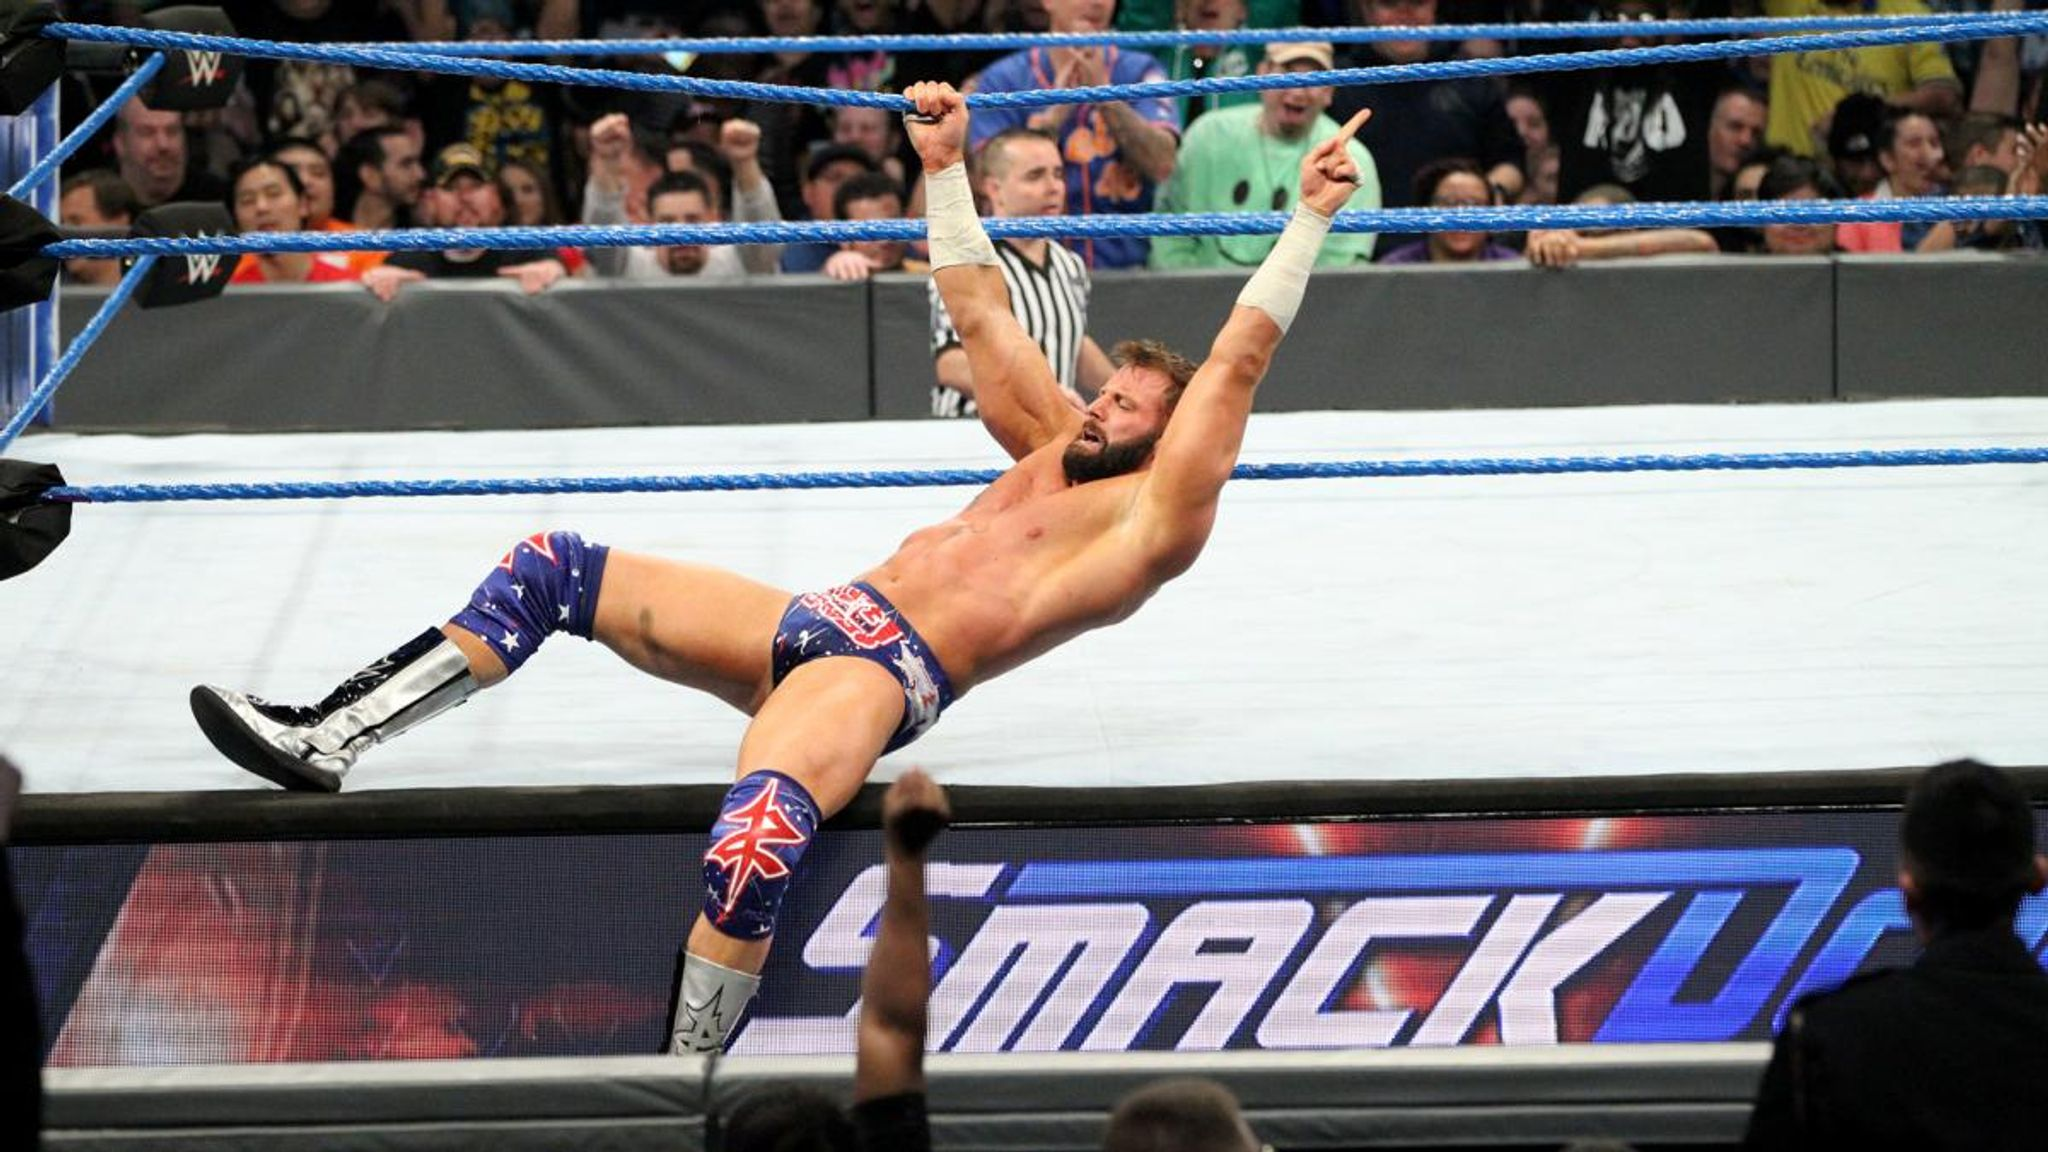 WWE: Smackdown's Zack Ryder out injured for 'six to nine